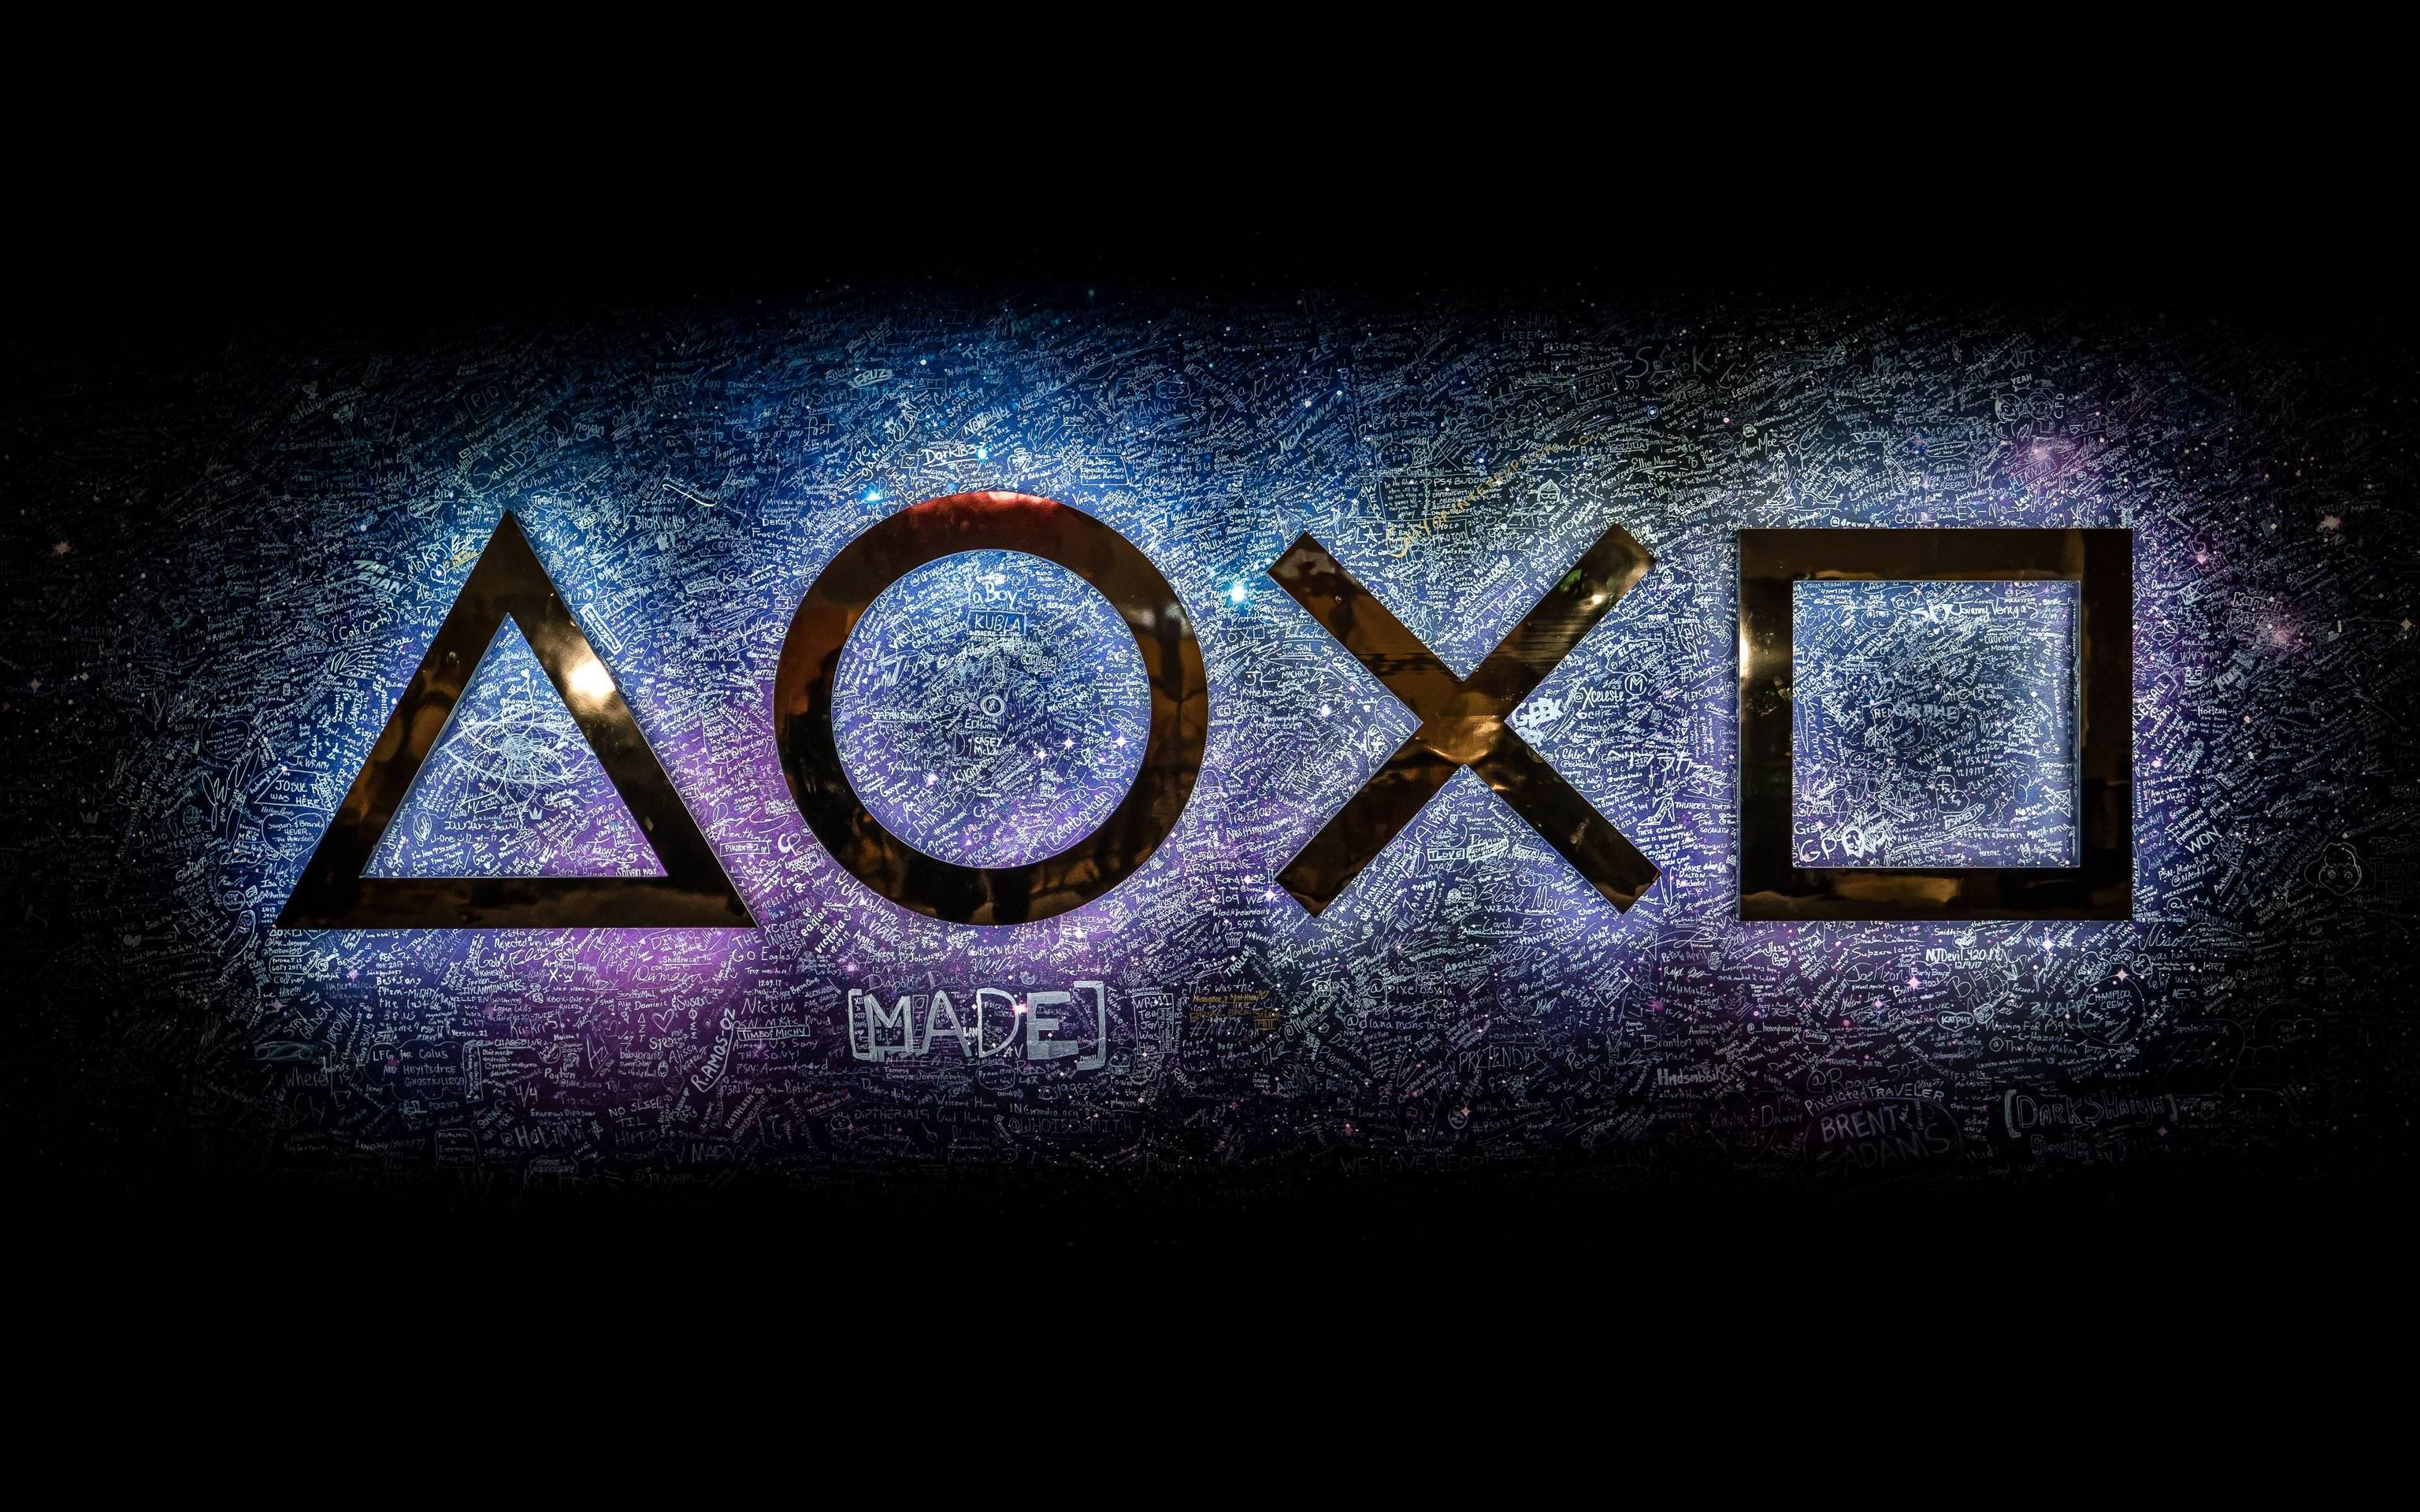 2048 X 1152 Playstation Is Amazing Hd Wallpapers For Desktop Or Mobile Explore More Related Wallpaper Pict In 2020 Game Wallpaper Iphone Gaming Wallpapers Playstation